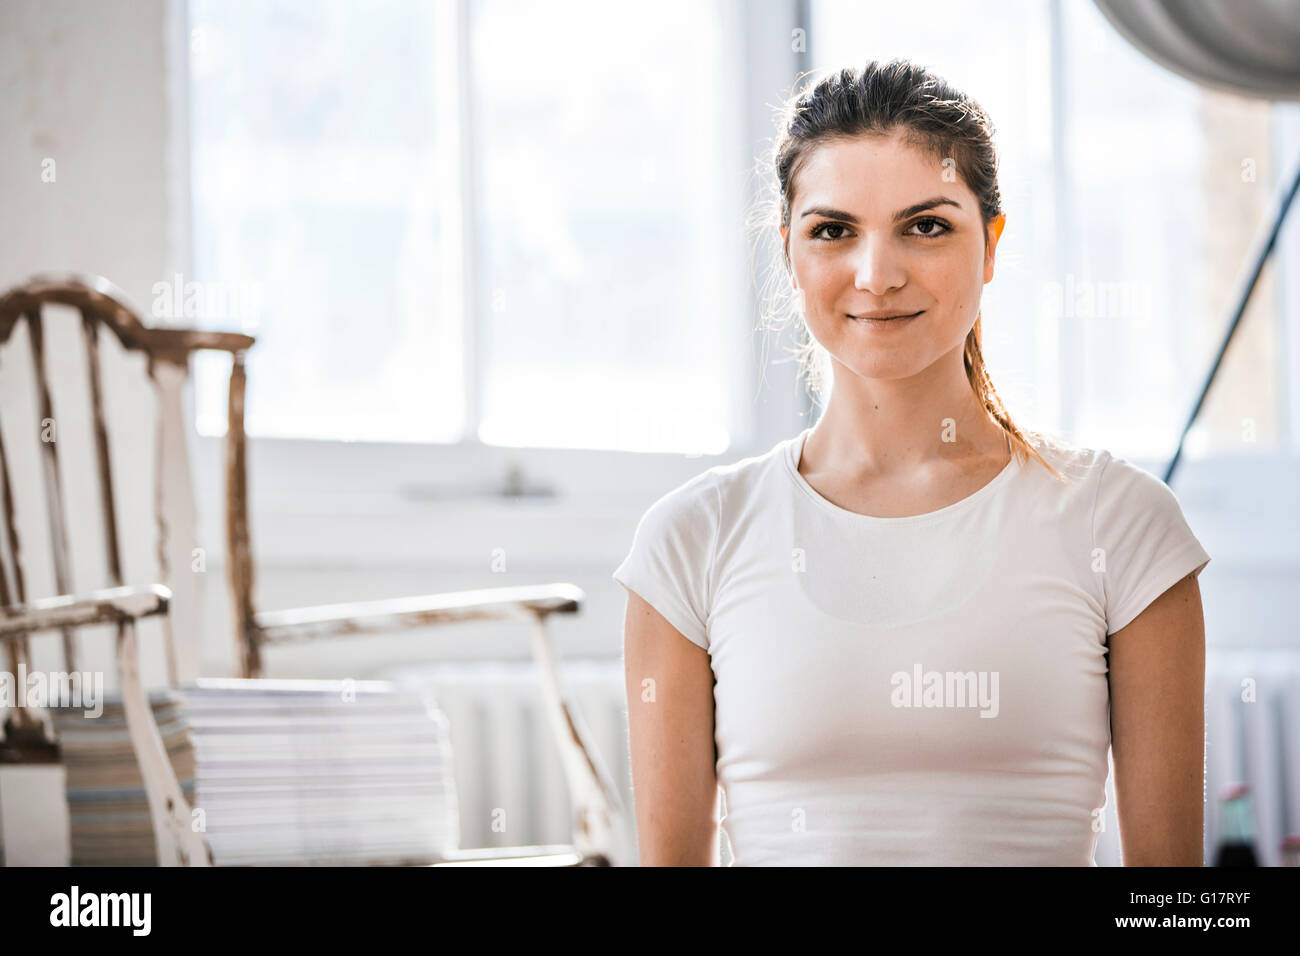 Portrait of beautiful young woman in shabby chic apartment - Stock Image